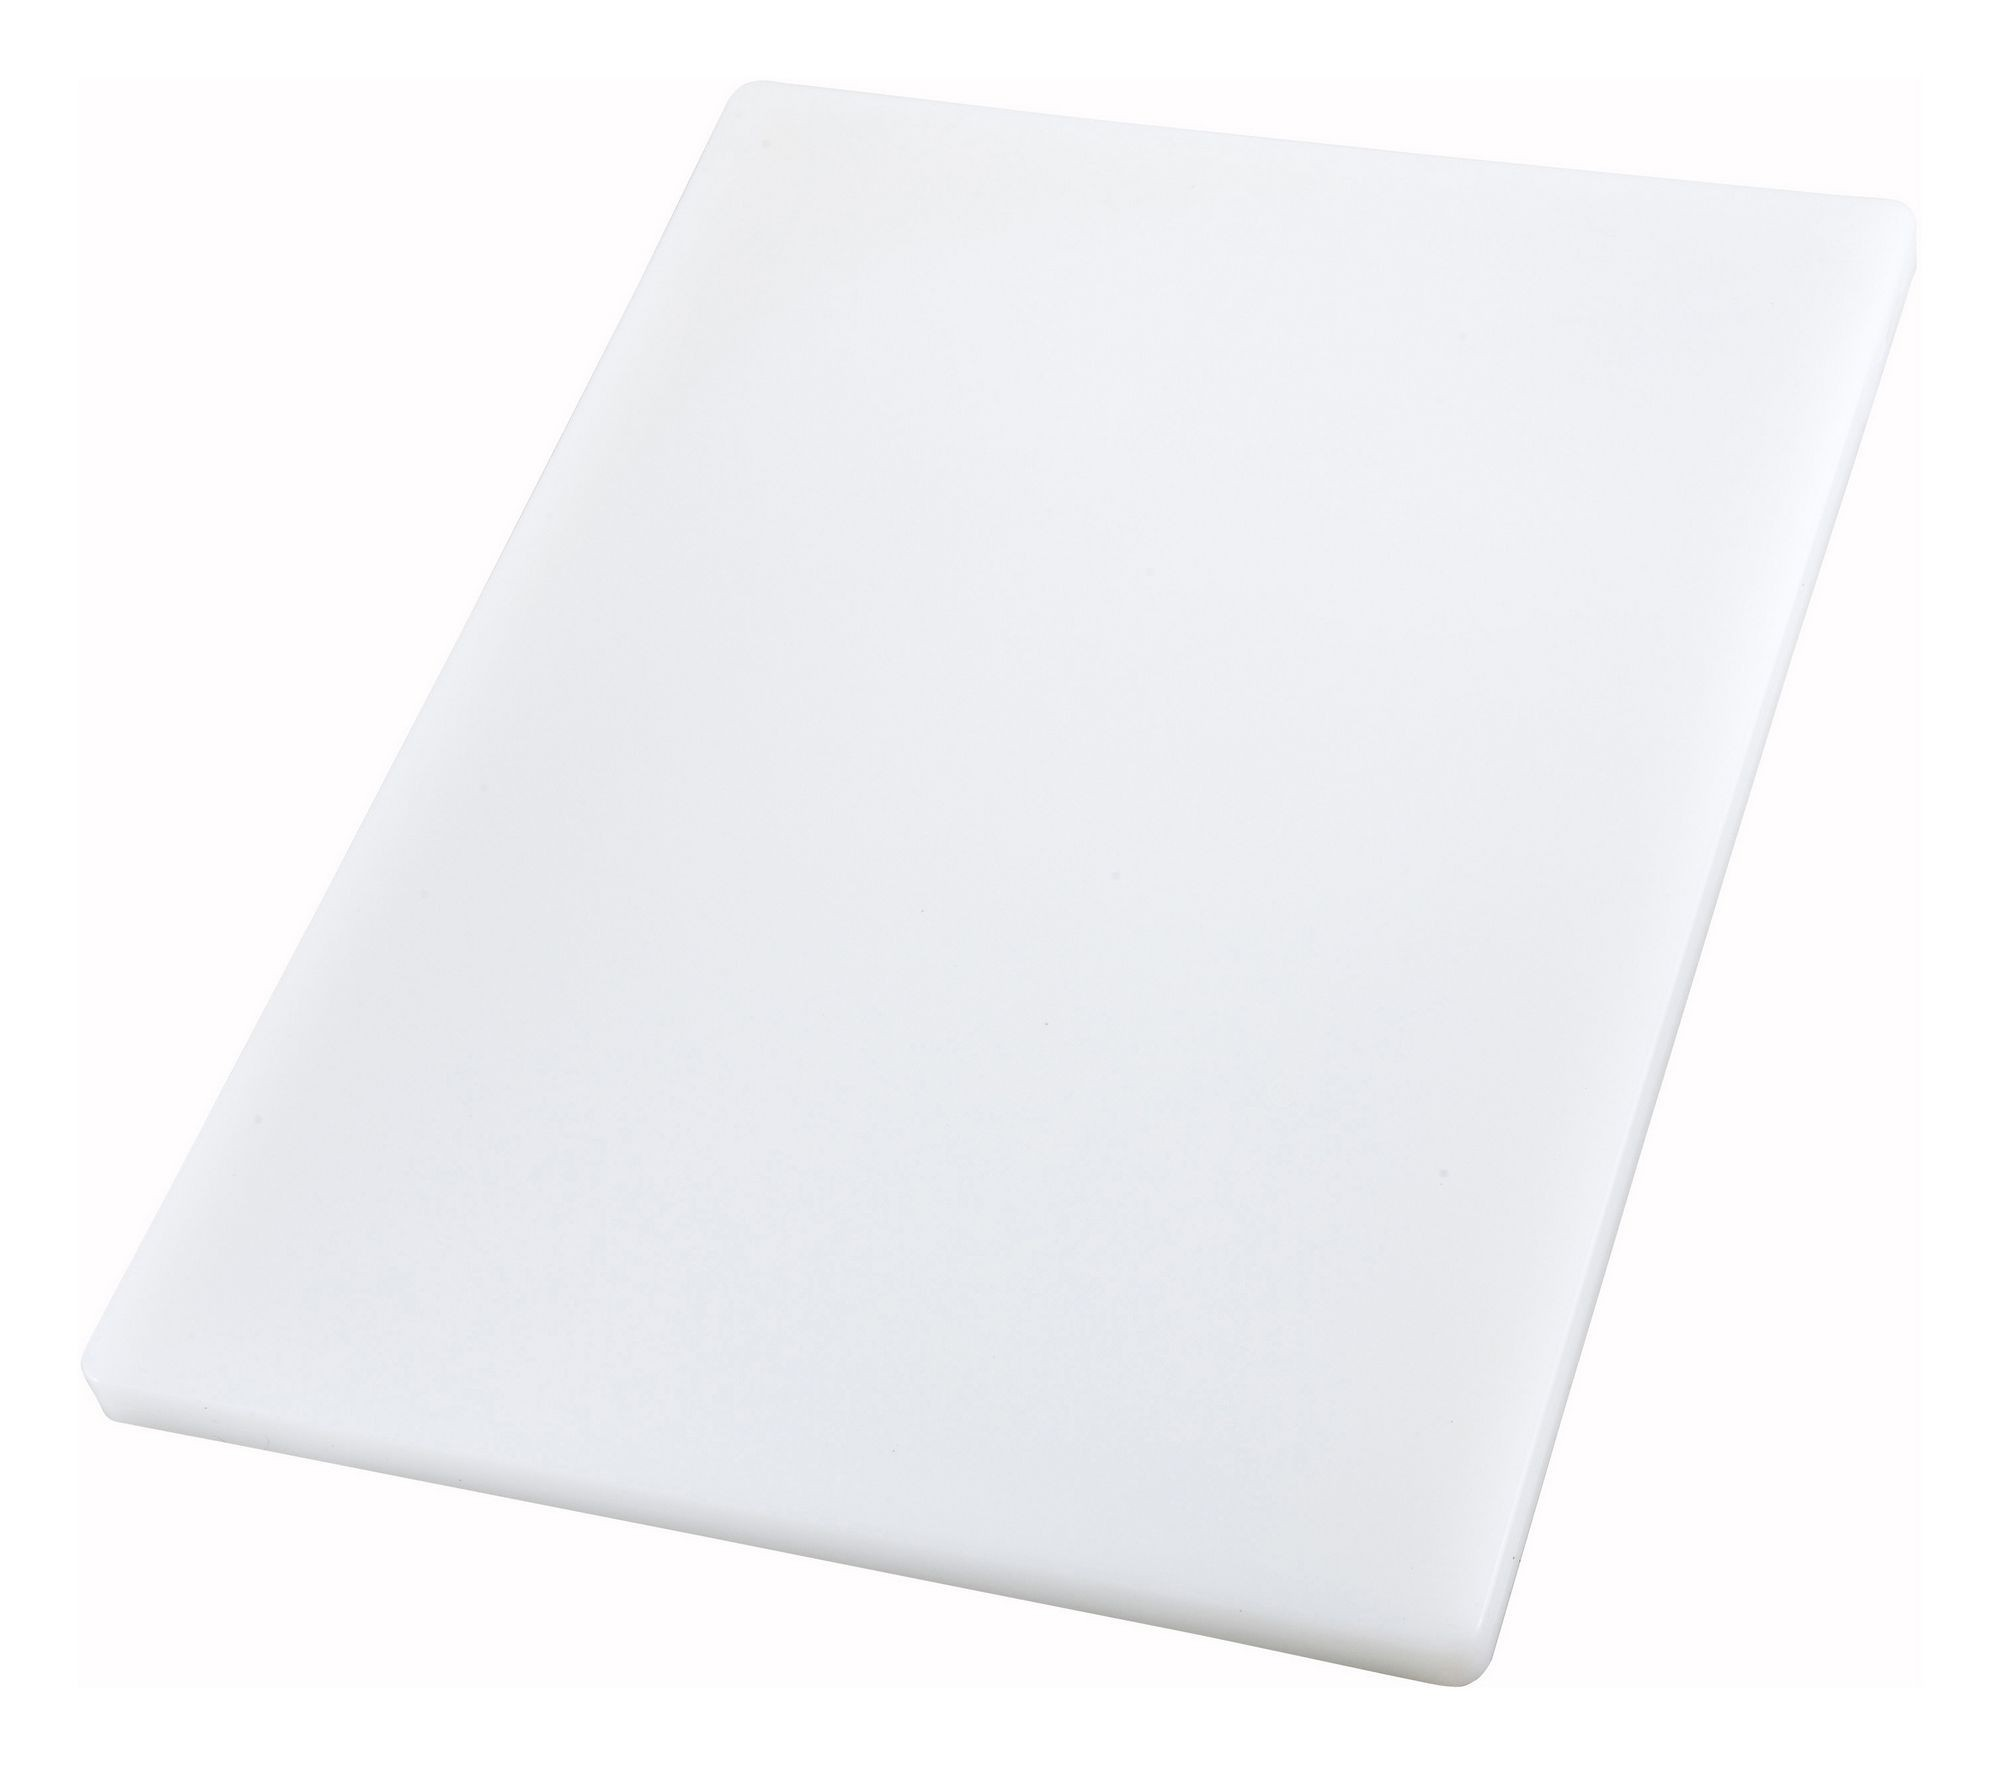 "Winco CBXH-1218 White Cutting Board 12"" x 18"" x 1"""